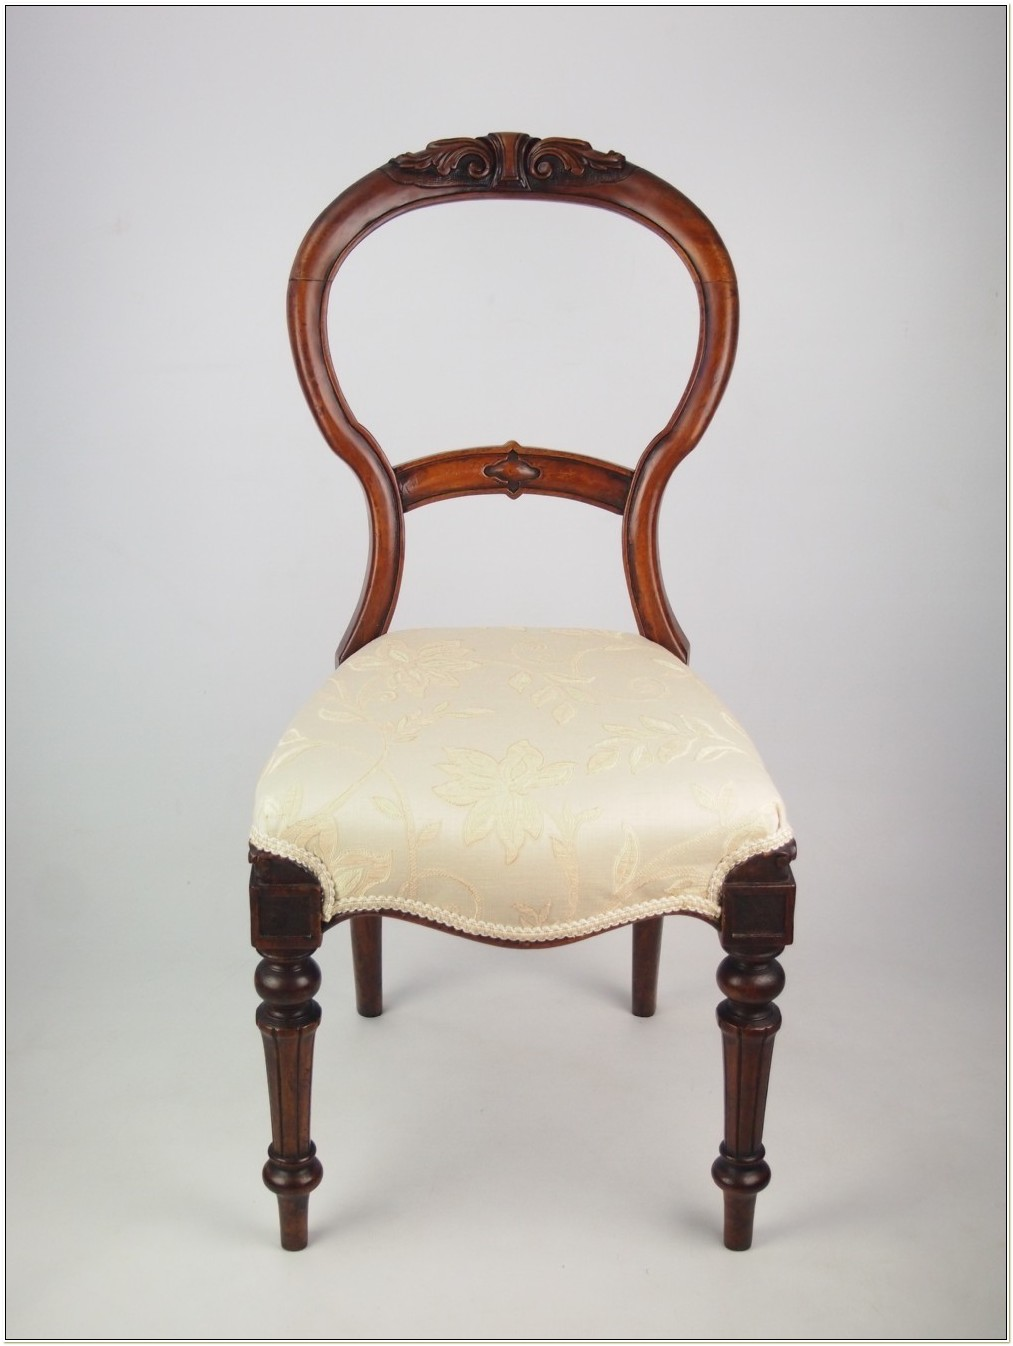 Antique Victorian Balloon Back Chairs